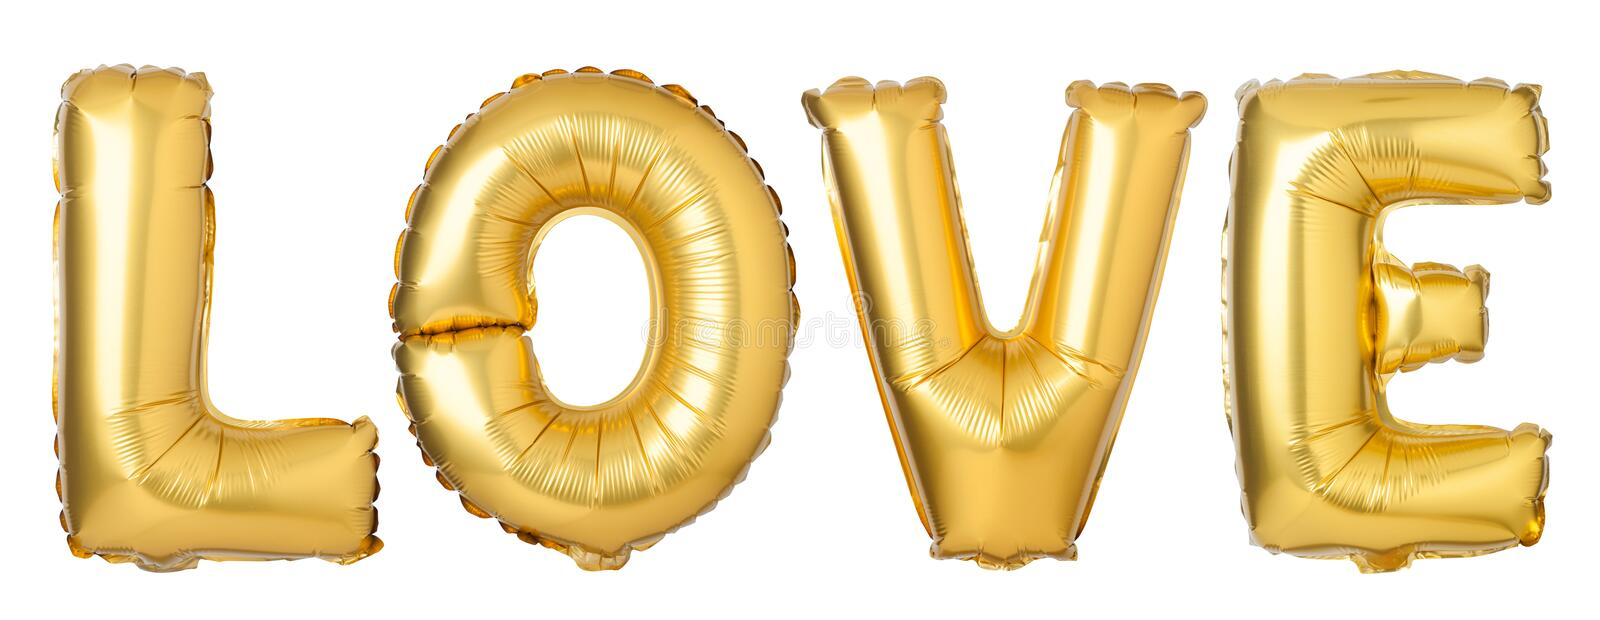 Word LOVE in English alphabet from golden balloons. Isolated on white background stock photography